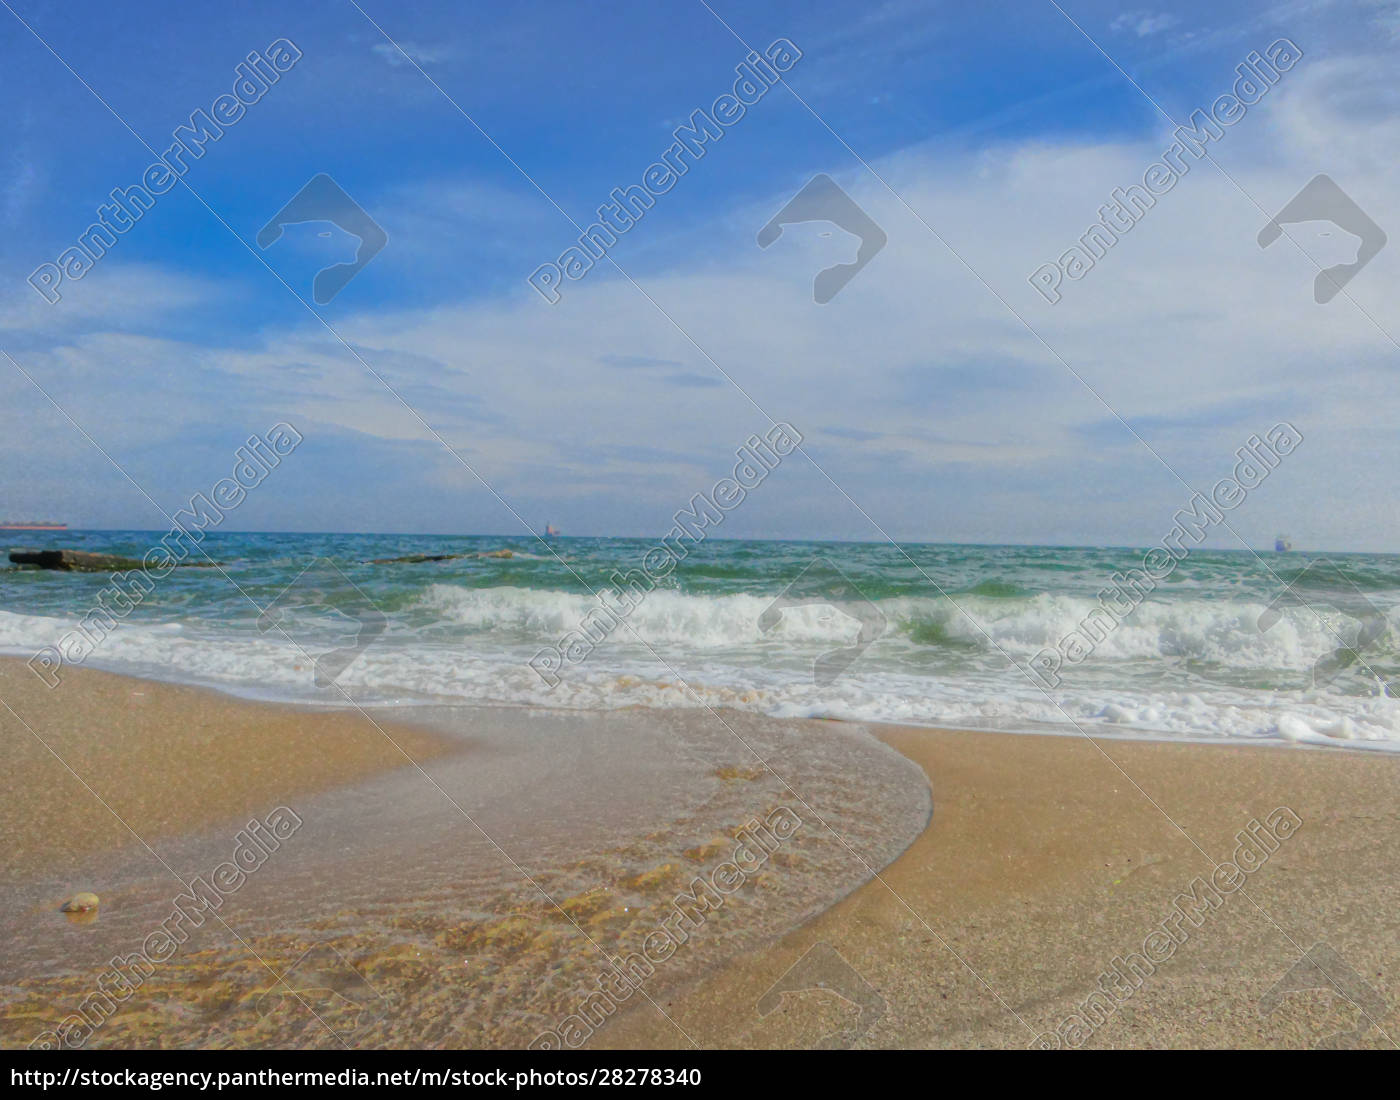 crystal, clear, sea, waves, and, blue - 28278340